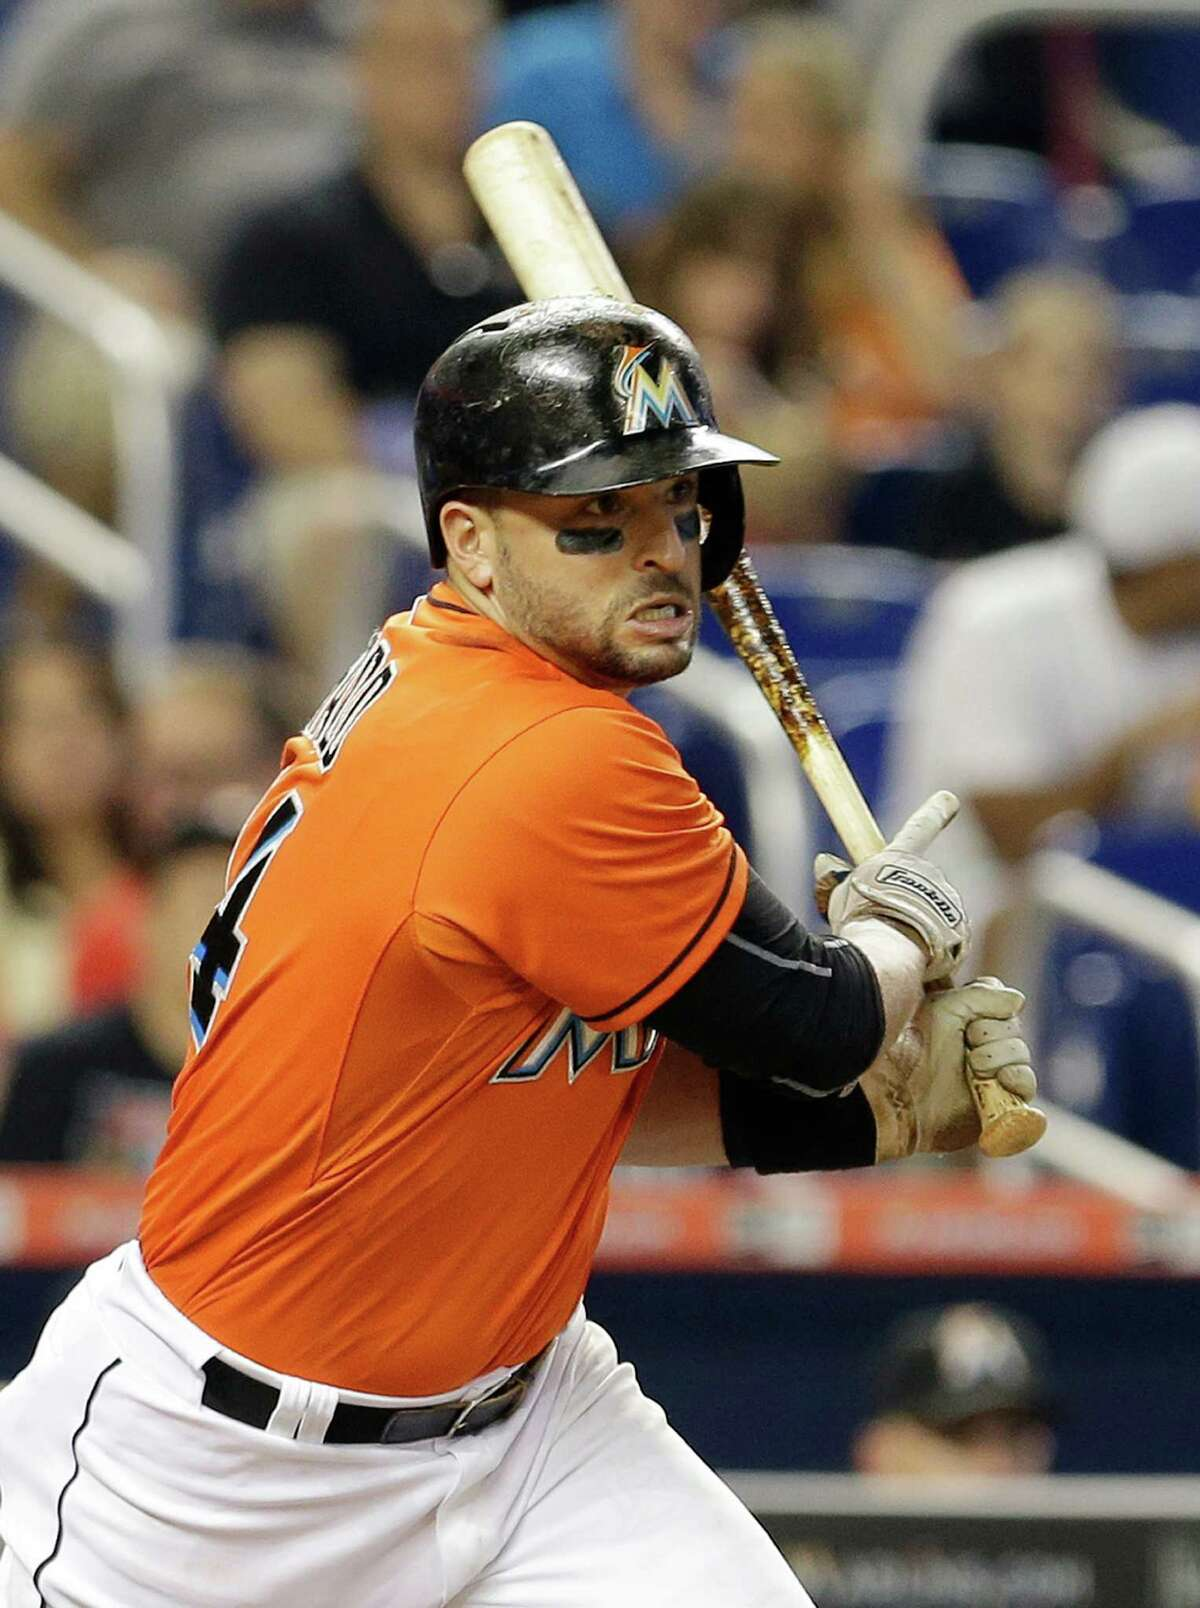 Miami Marlins' Martin Prado (14) follows through on a single against the New York Mets in the fourth inning of a baseball game, Sunday, Sept. 6, 2015, in Miami. (AP Photo/Alan Diaz) ORG XMIT: FLAD108